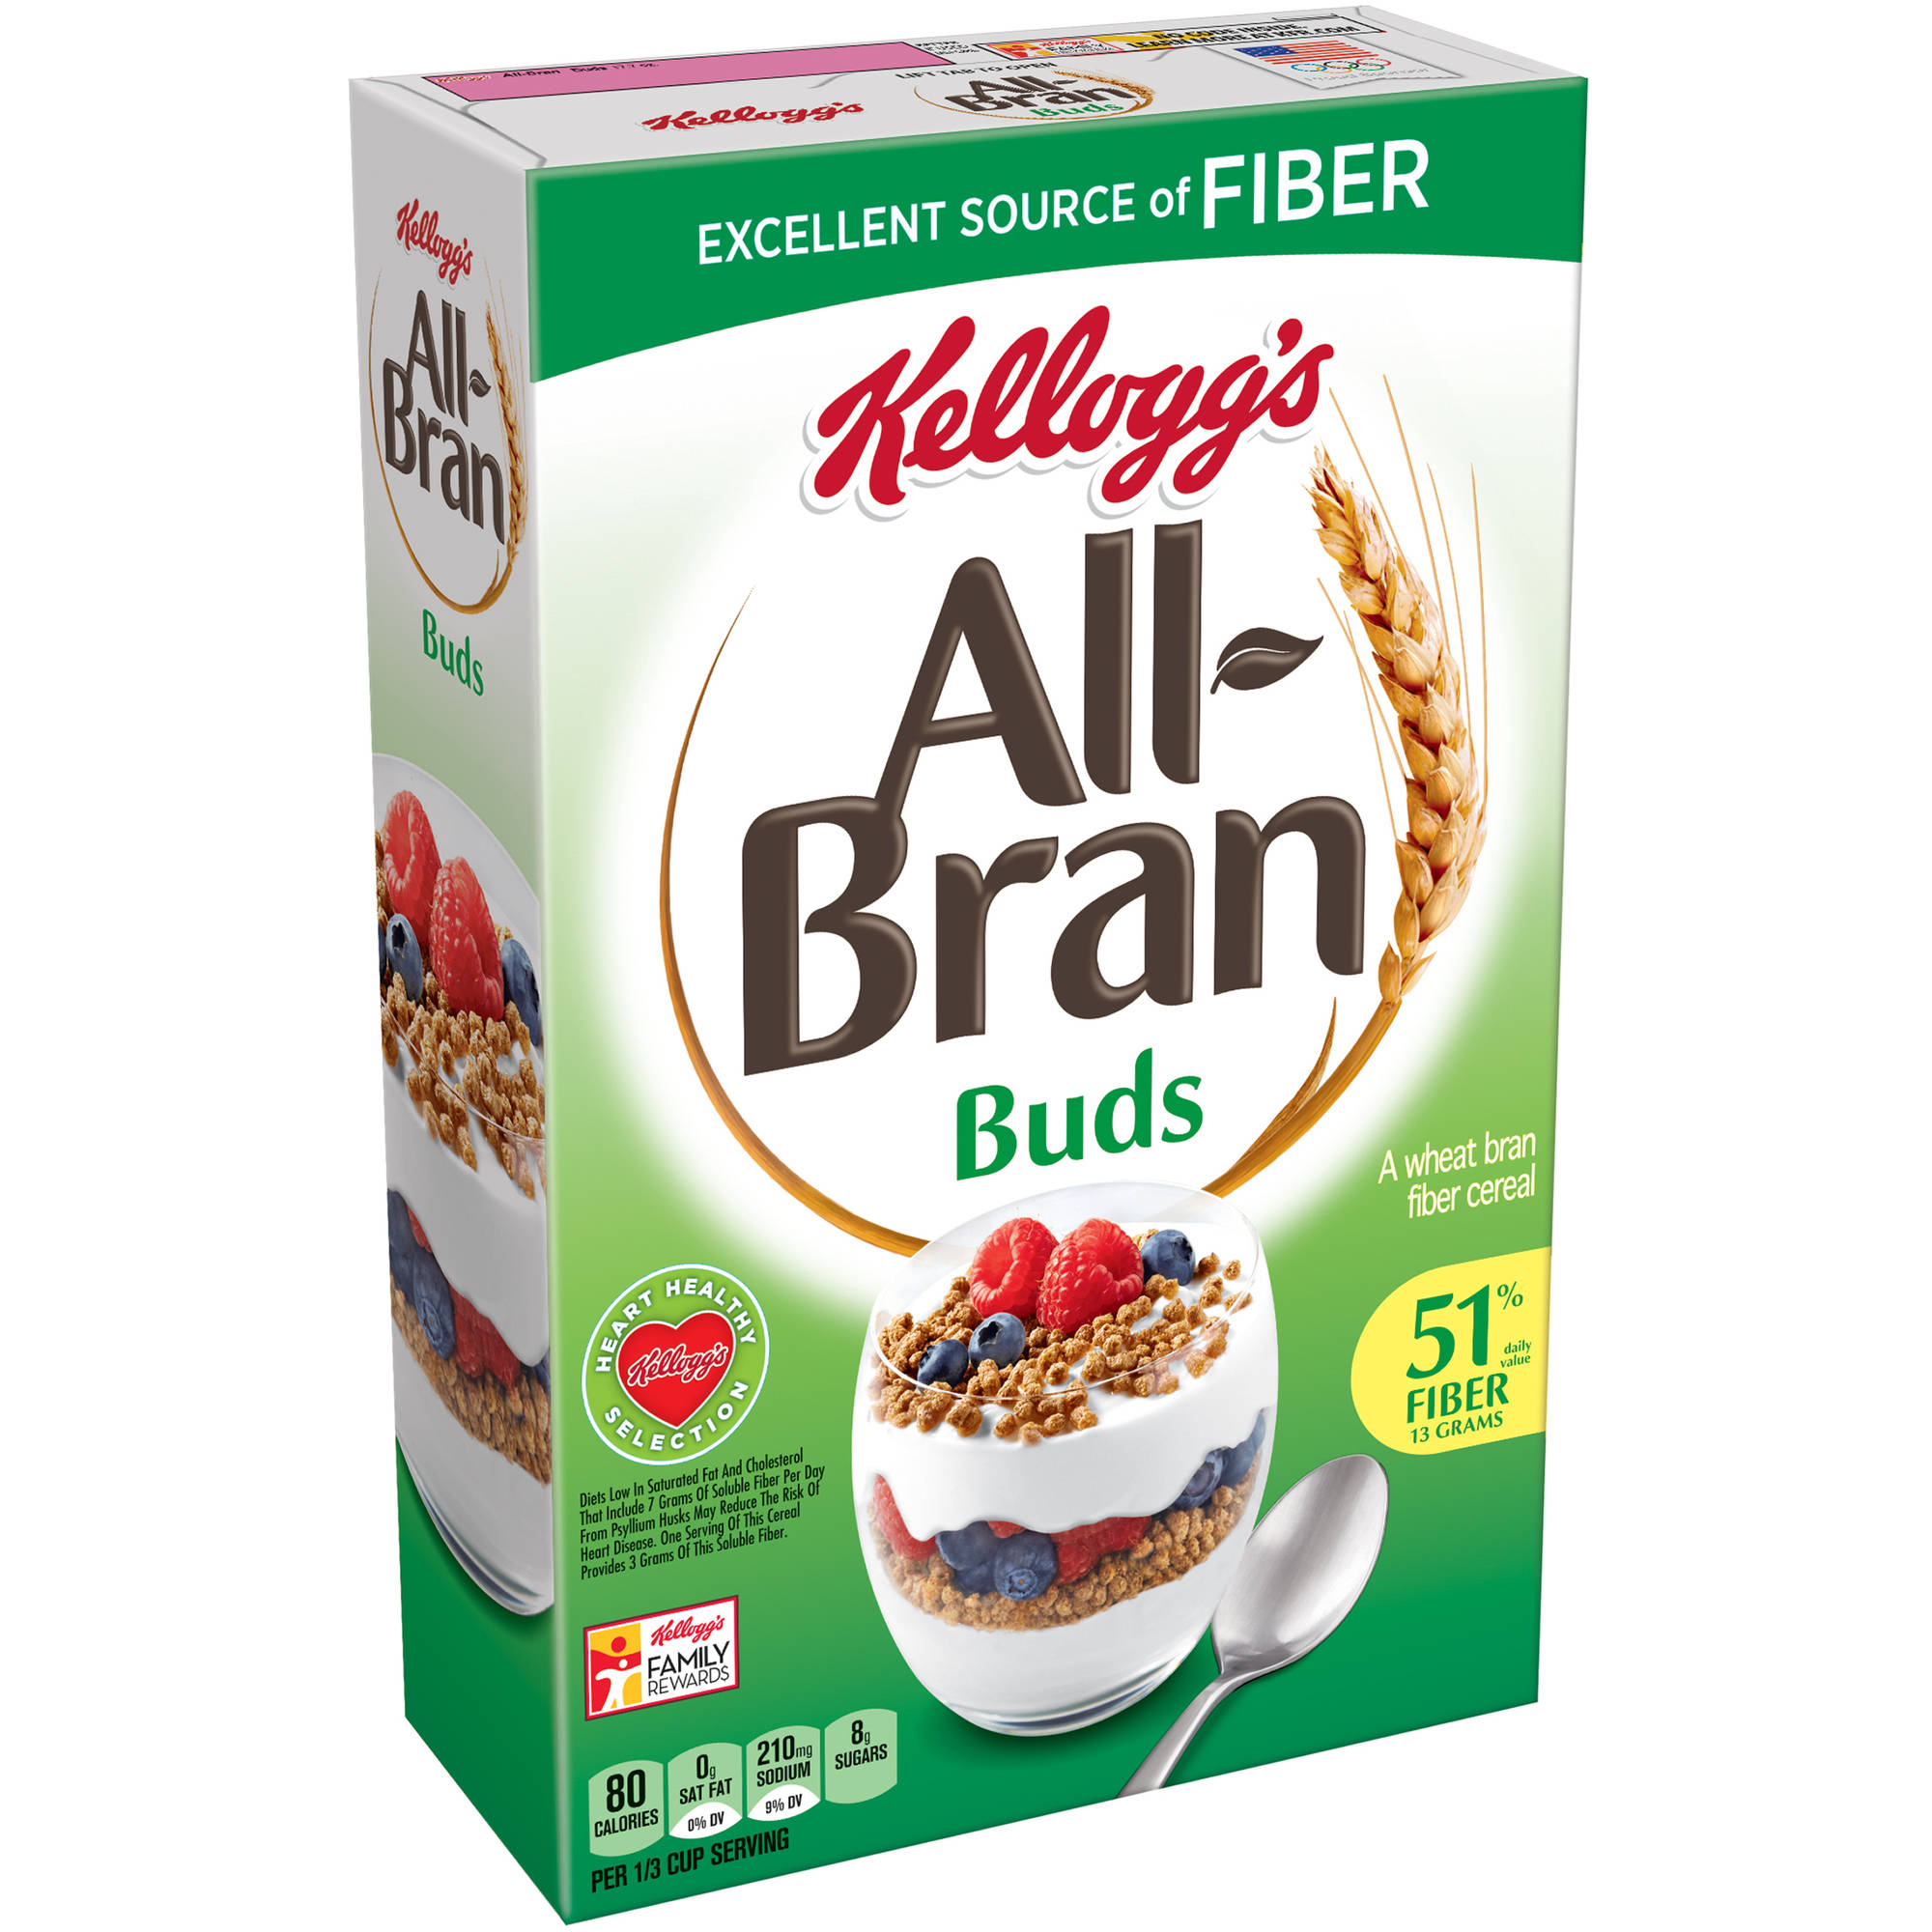 Kellogg's All-Bran Branbuds Cereal, 17.7 Ounce box